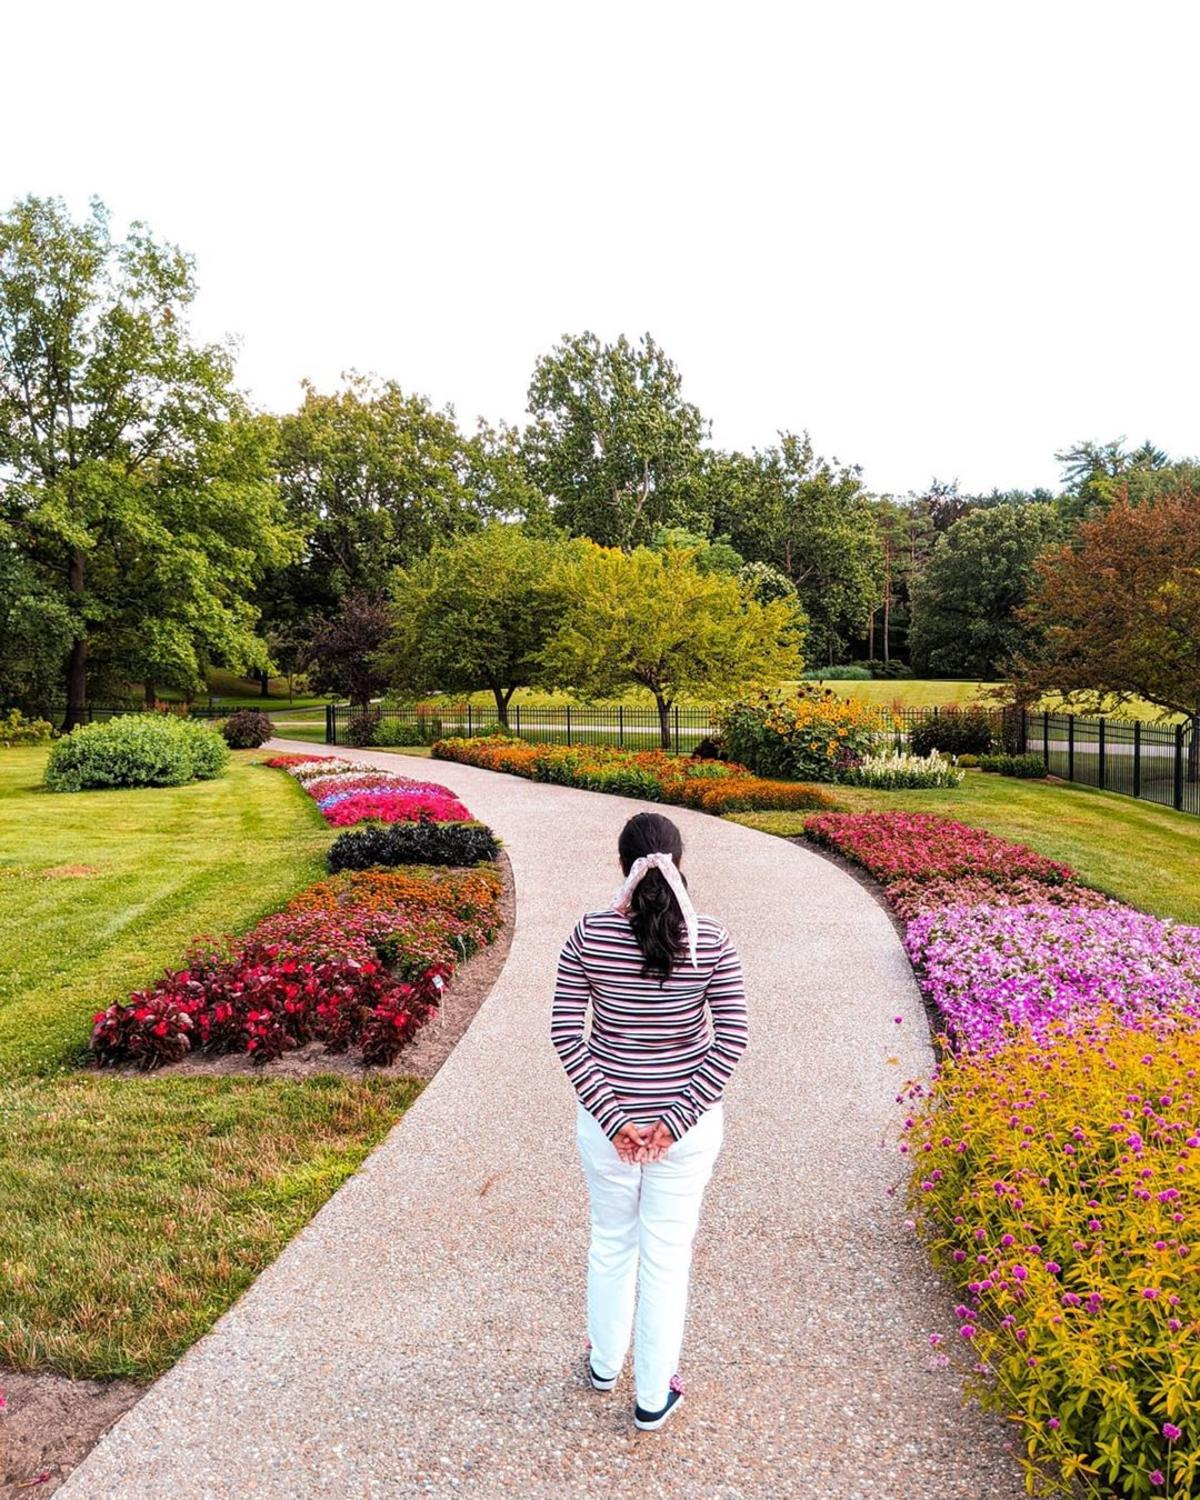 Woman looking down a flower-lined pathway winding through Dow Gardens in Midland